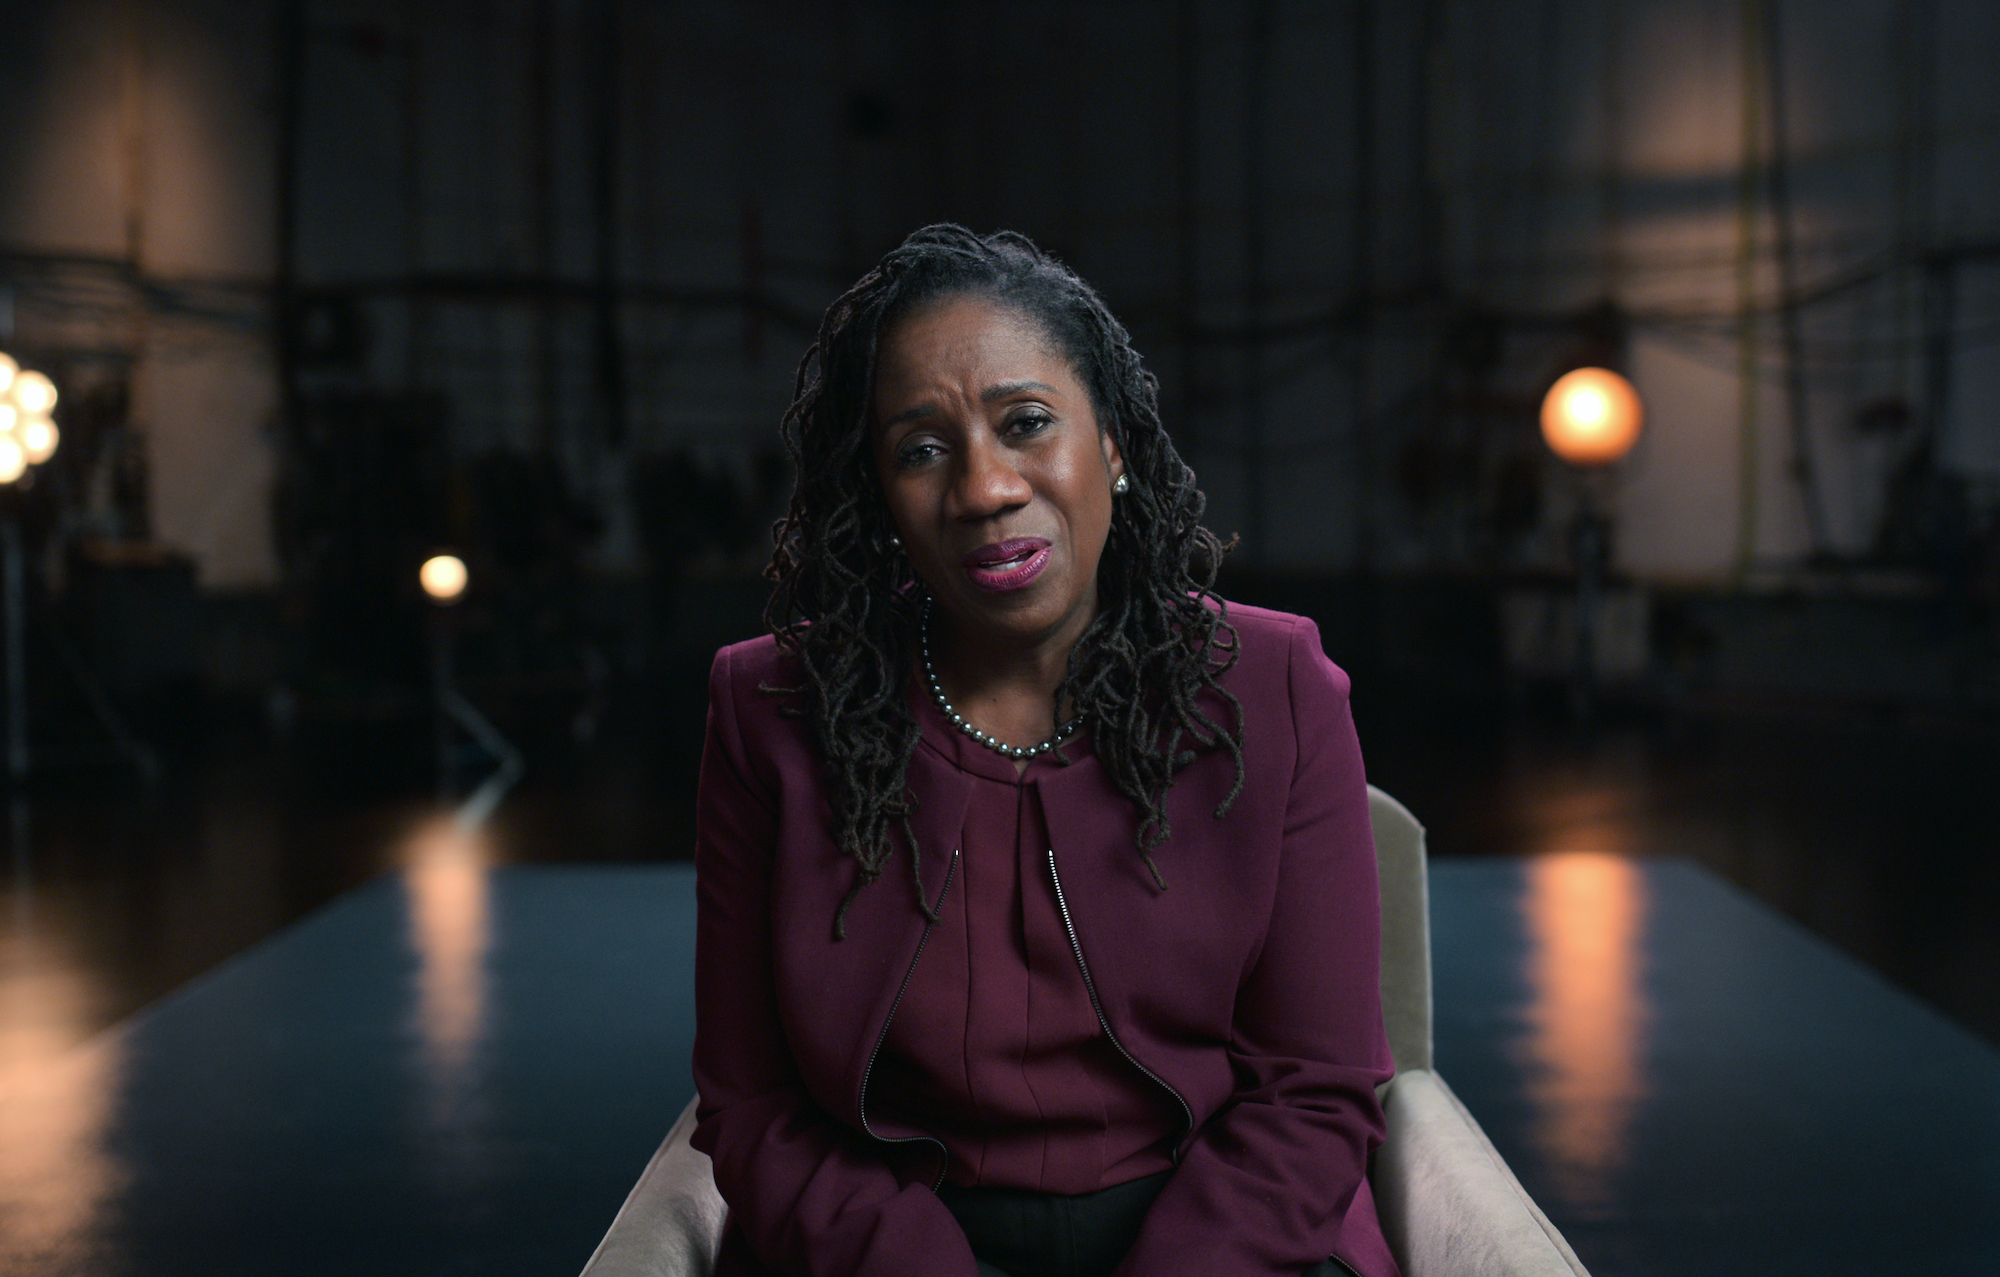 AMEND-The Fight for America; SHERRILYN IFILL, President of the NAACP Legal Defense & Educational fund, from episode 2 of AMEND-The Fight for America. Credit: Courtesy of Netflix/NETFLIX©2021